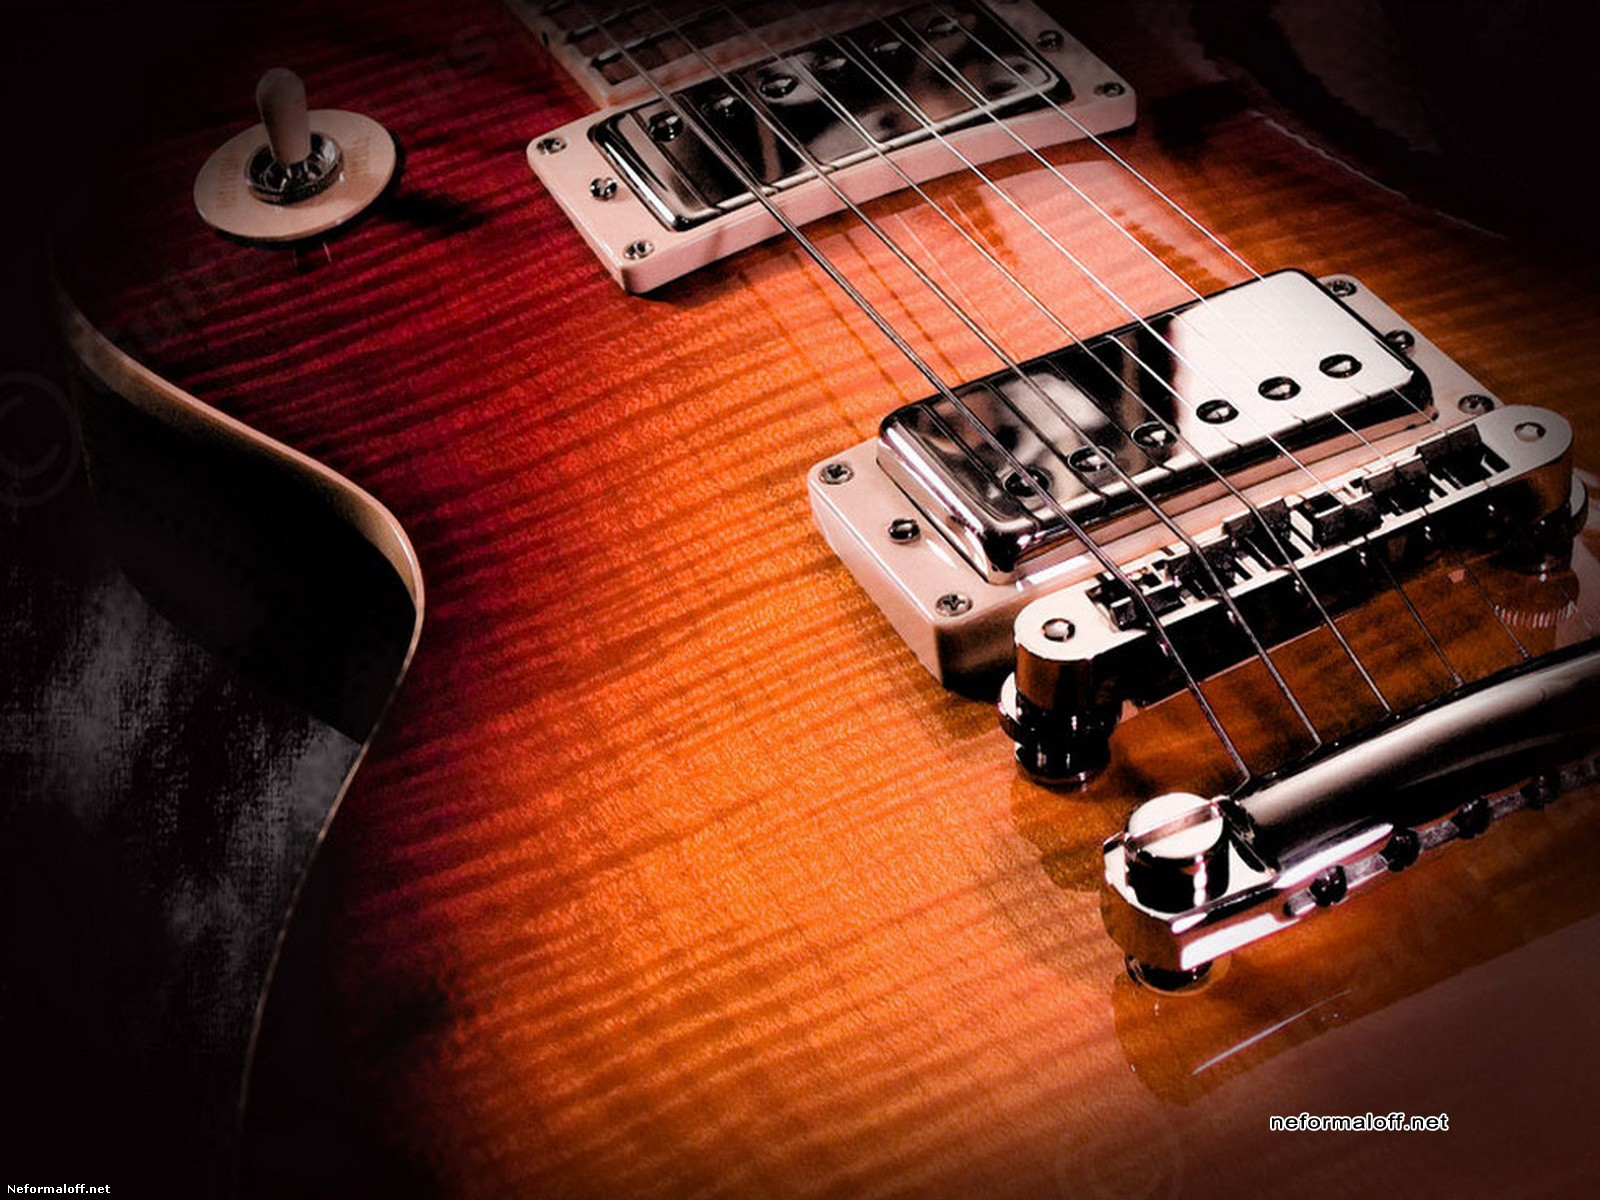 40 Guitar HD Wallpapers amazingmaterialcom 1600x1200